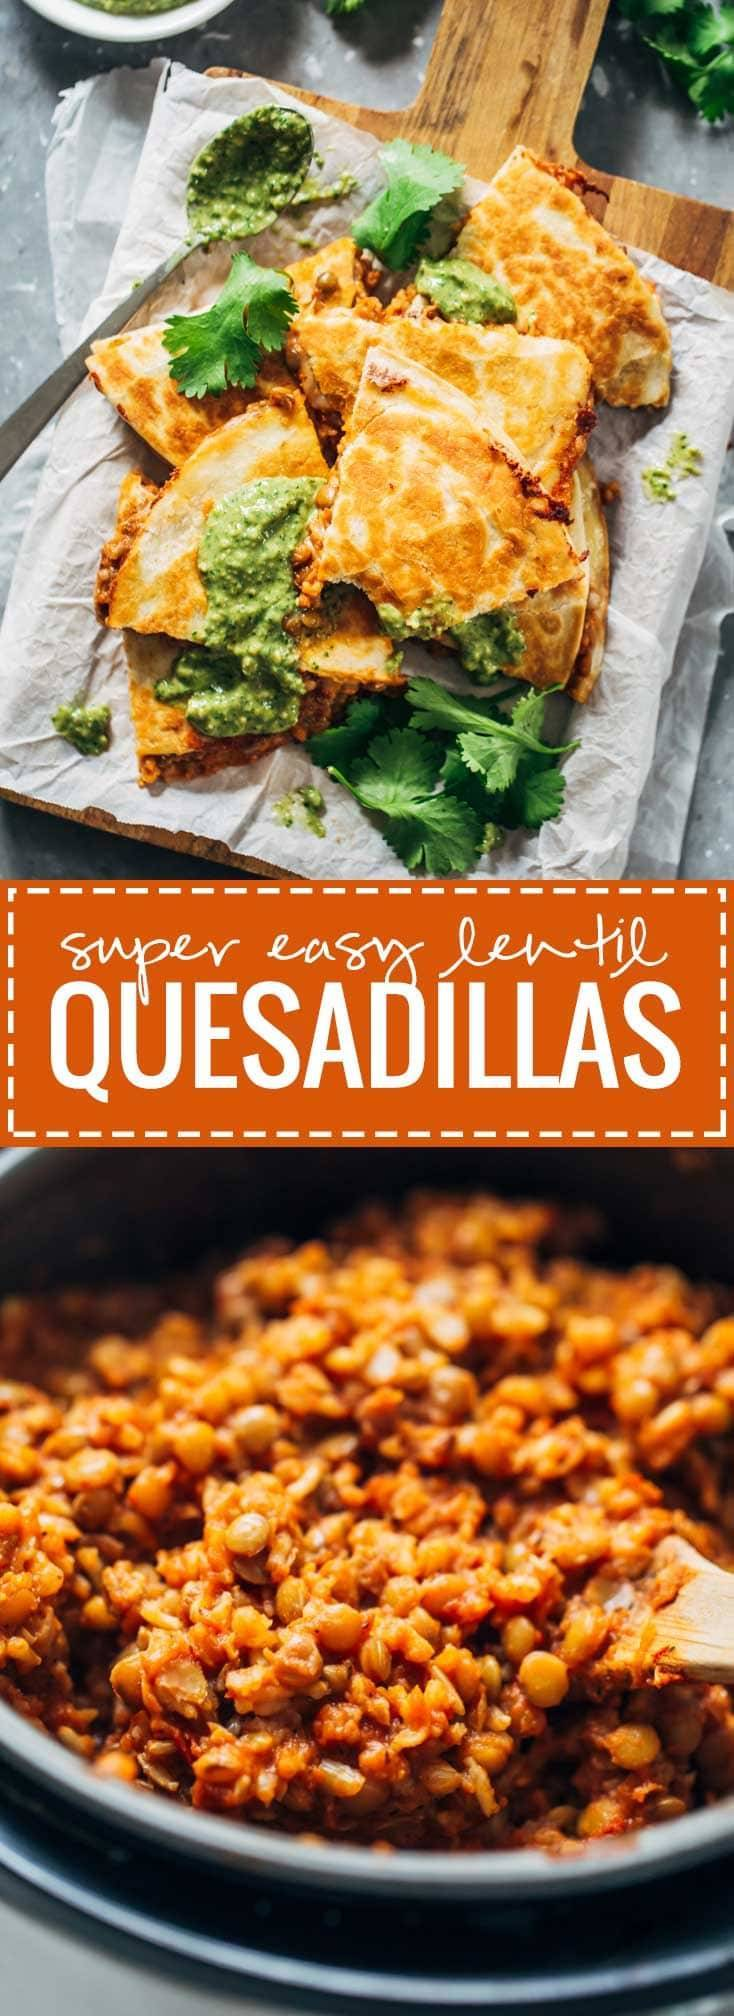 Quick and Easy Lentil Quesadillas - vegetarian comfort food! | pinchofyum.com